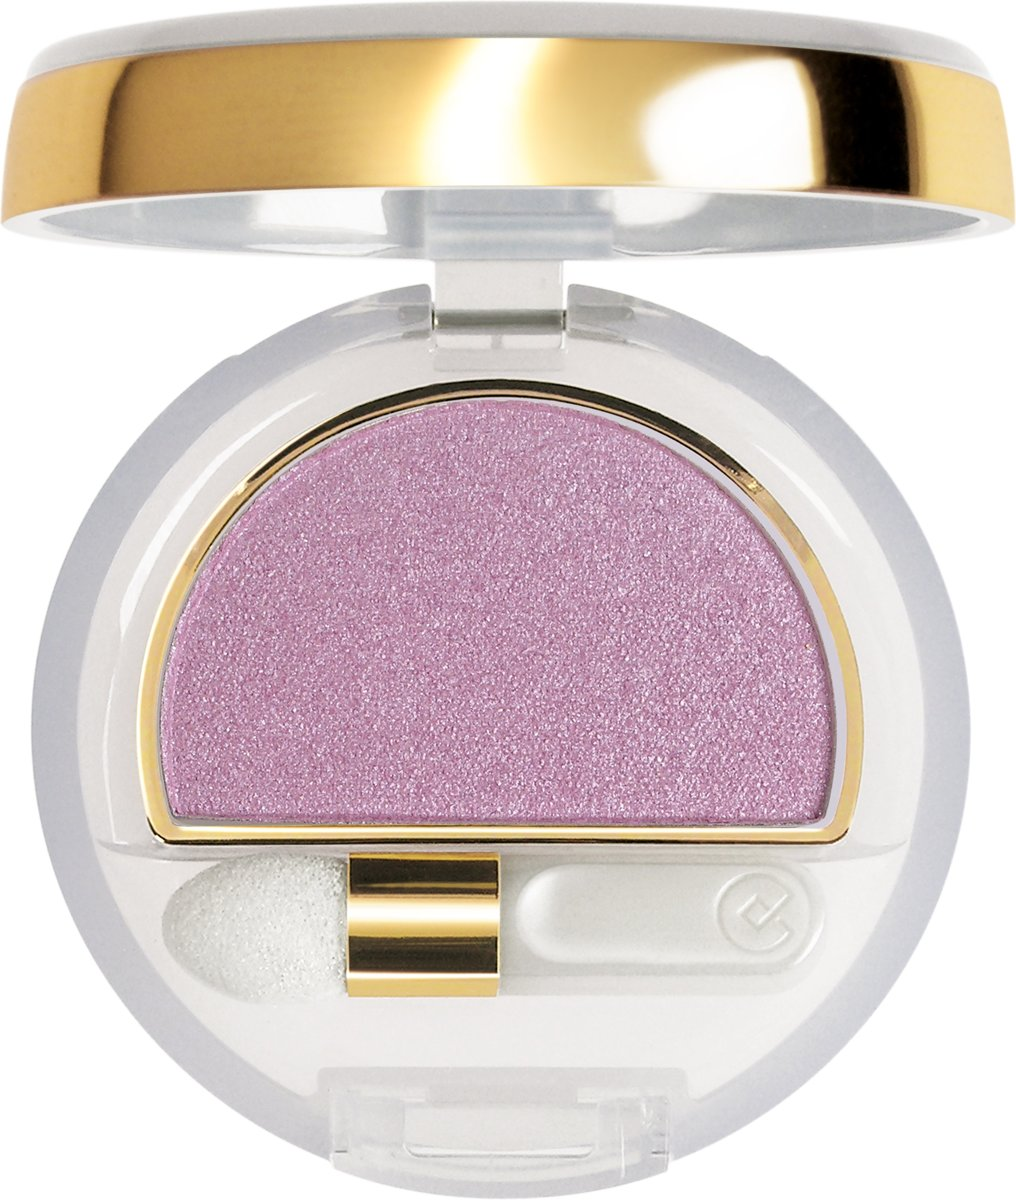 Collistar Silk Effect Eyeshadow - Wild Lilac- Oogschaduw